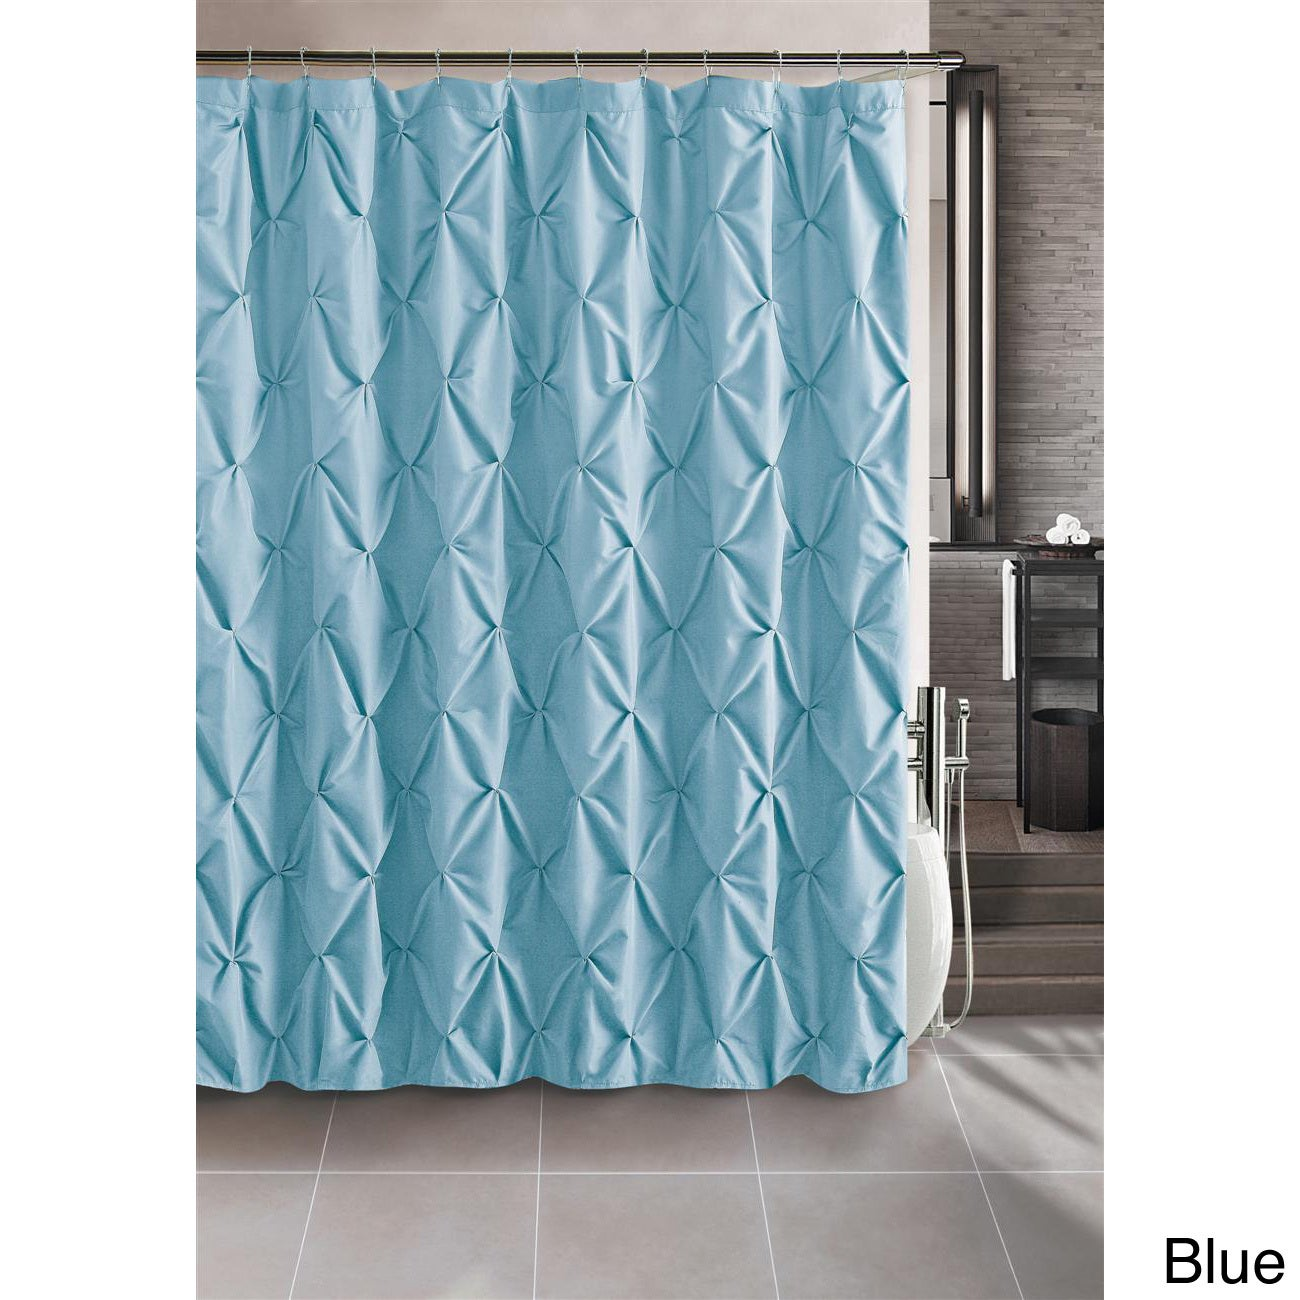 Carmen Contemporary Shower Curtain Overstock Shopping Great Deals On Victoria Classics